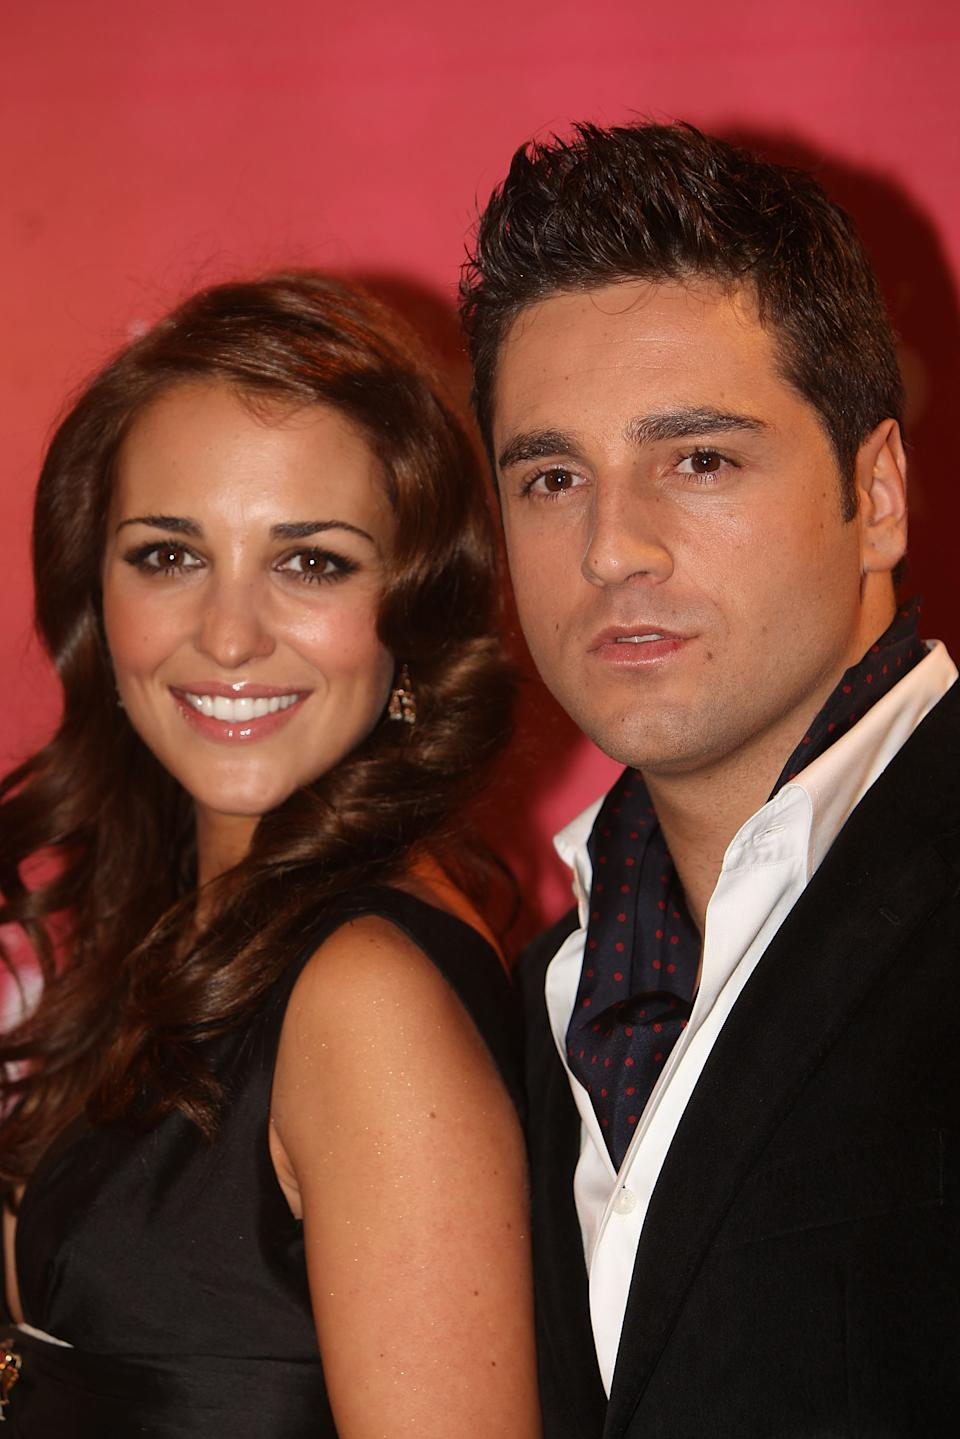 Actress Paula Echevarria and her husband David Bustamante attend the Glamour Awards party at Casino de Madrid November 6, 2007 in Madrid, Spain. (Photo by Eduardo Parra/FilmMagic)